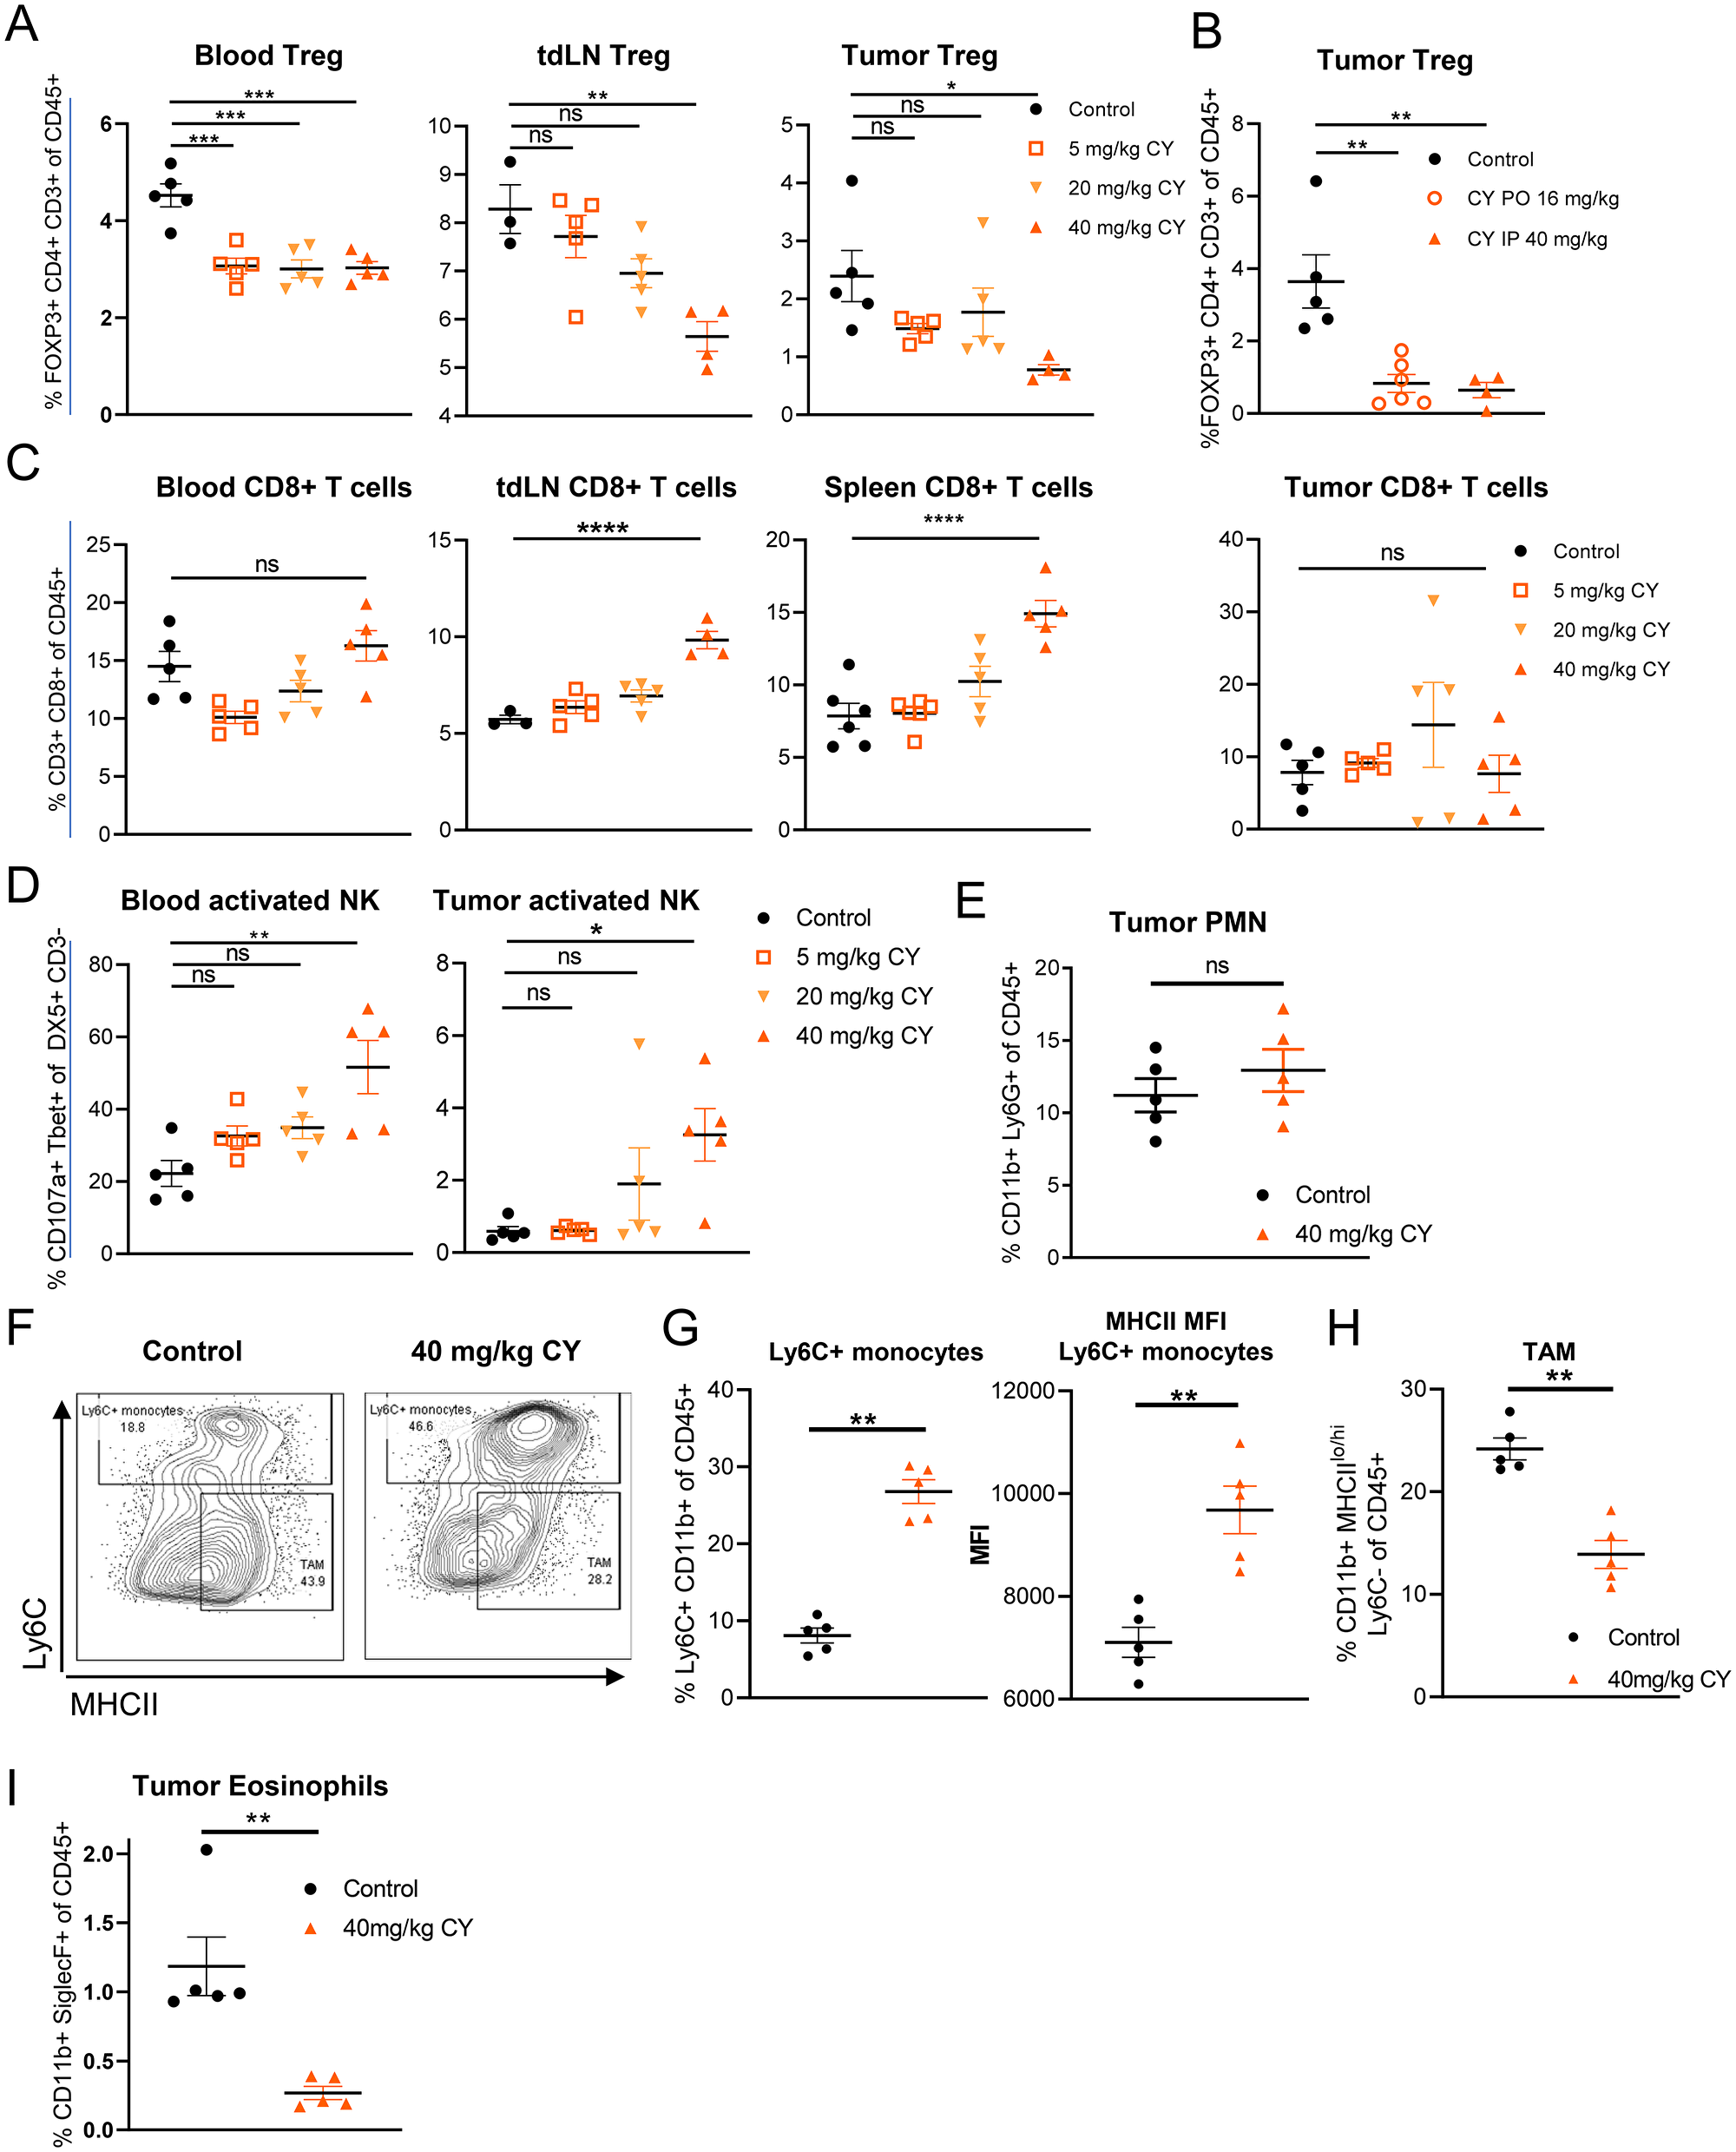 Low dose, metronomic cyclophosphamide decreases Tregs, increases activated NK cells and modulates the myeloid population in tumor-burdened mice.